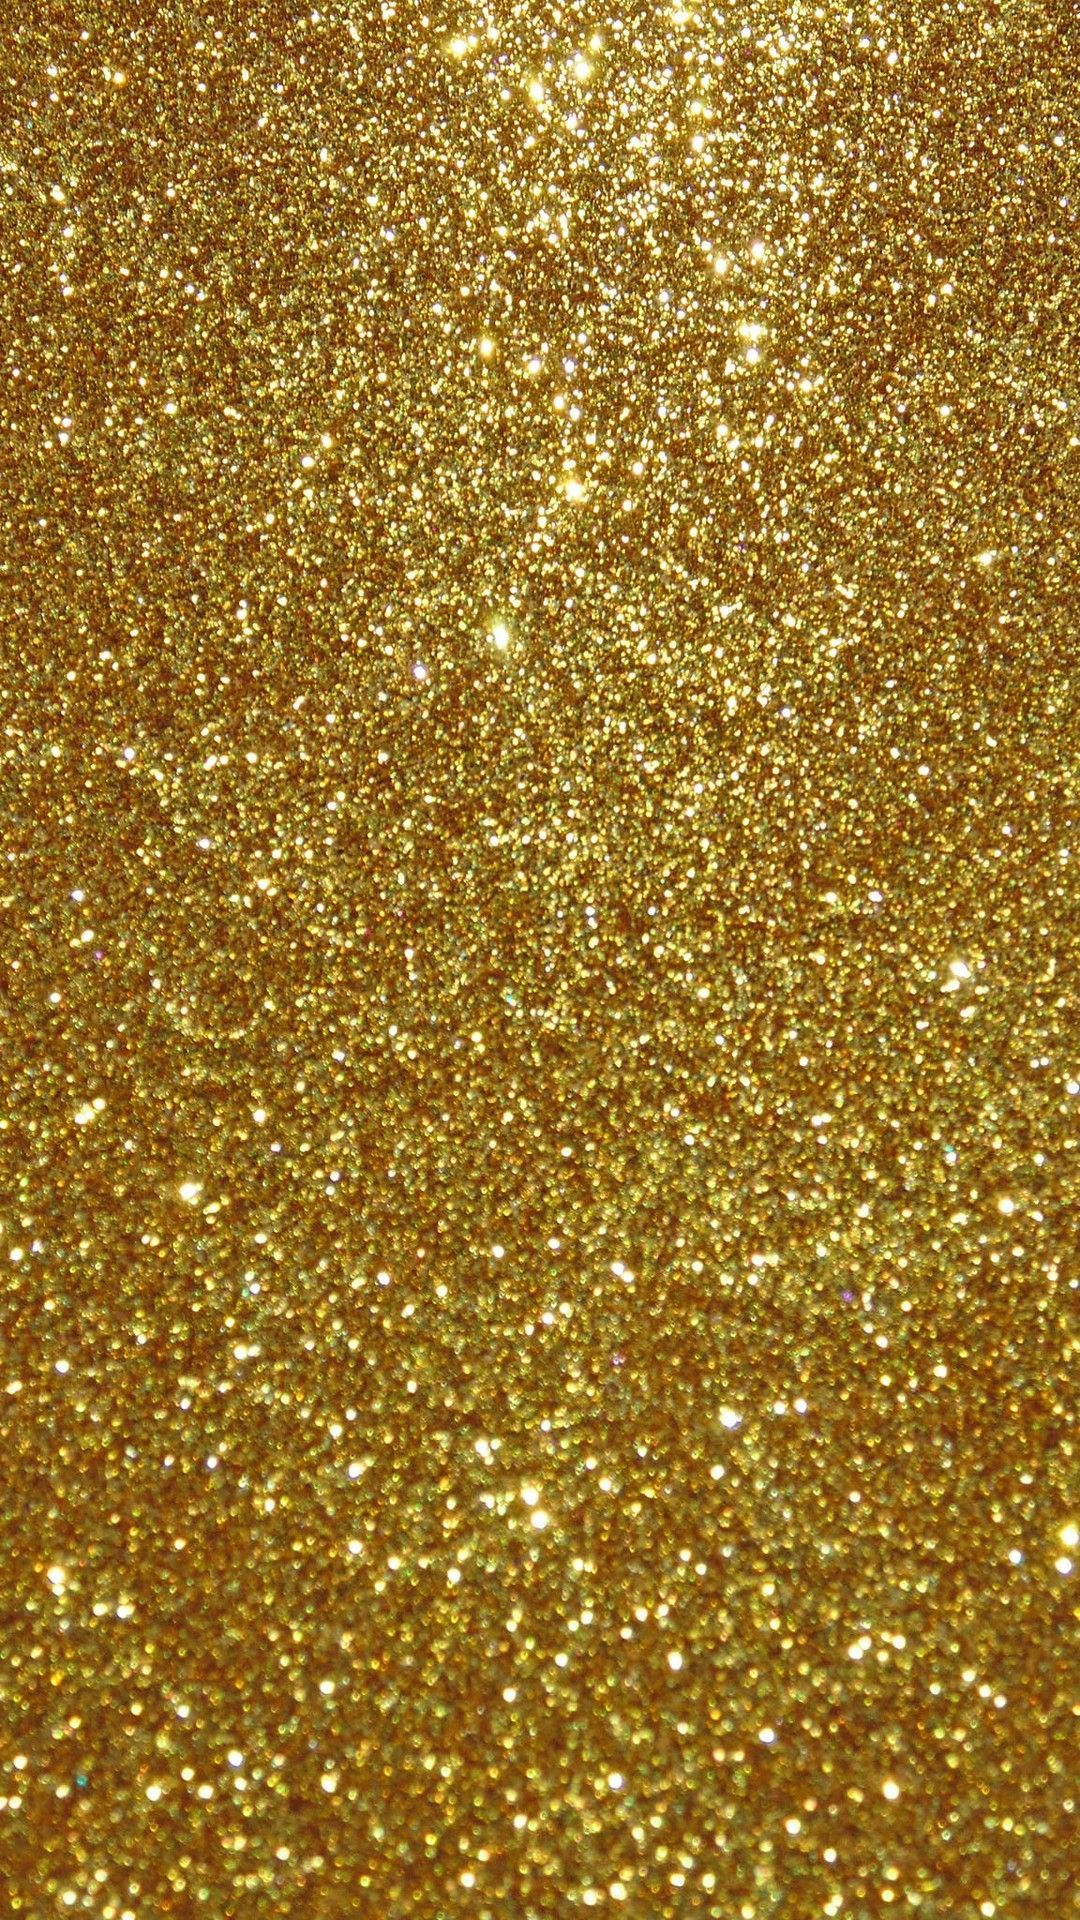 Gold Glitter Wallpaper For iPhone Best iPhone Wallpaper